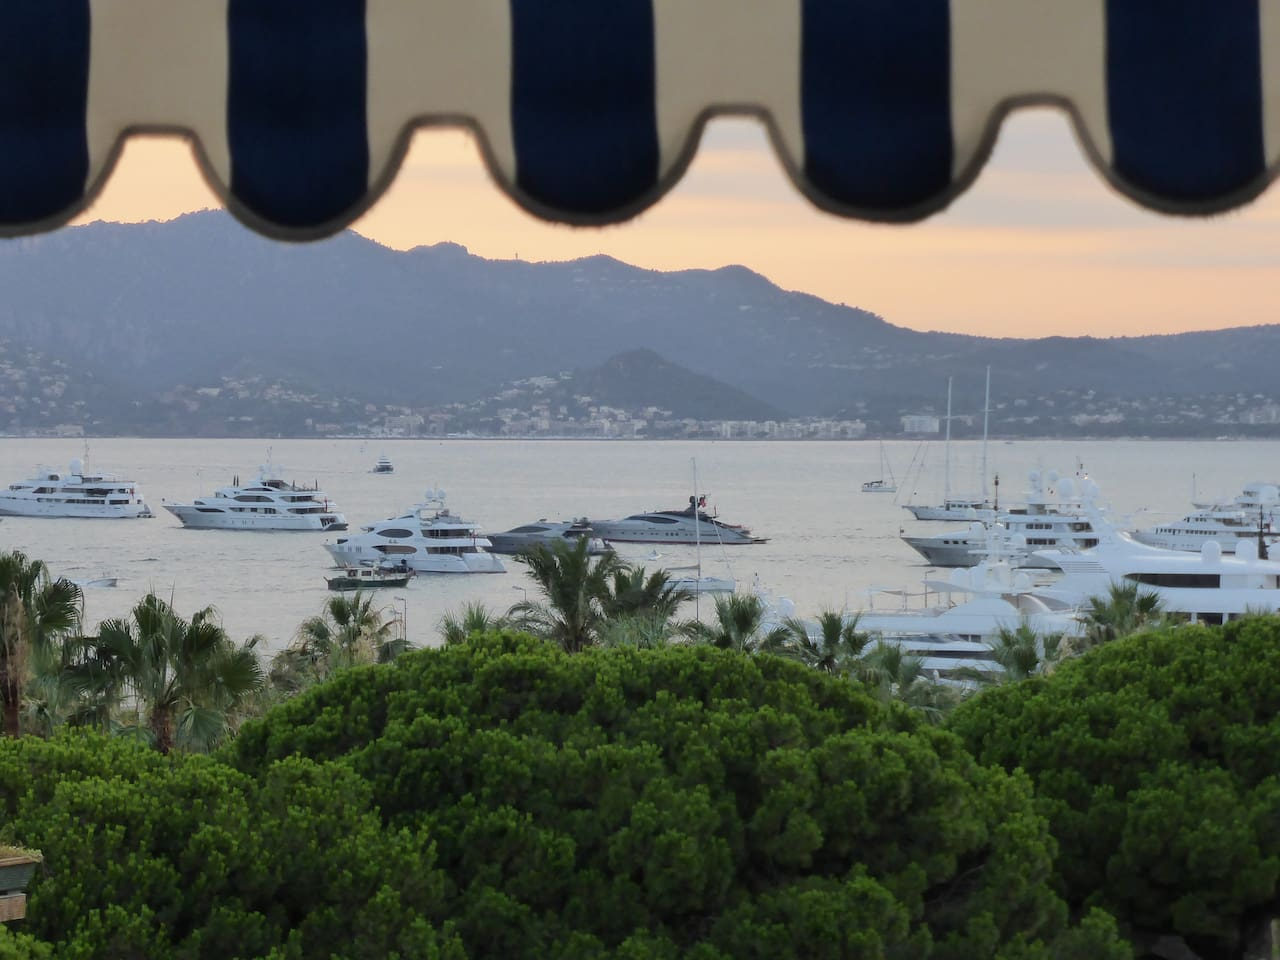 BAY of Cannes; the weather is back to sunny  and warm.